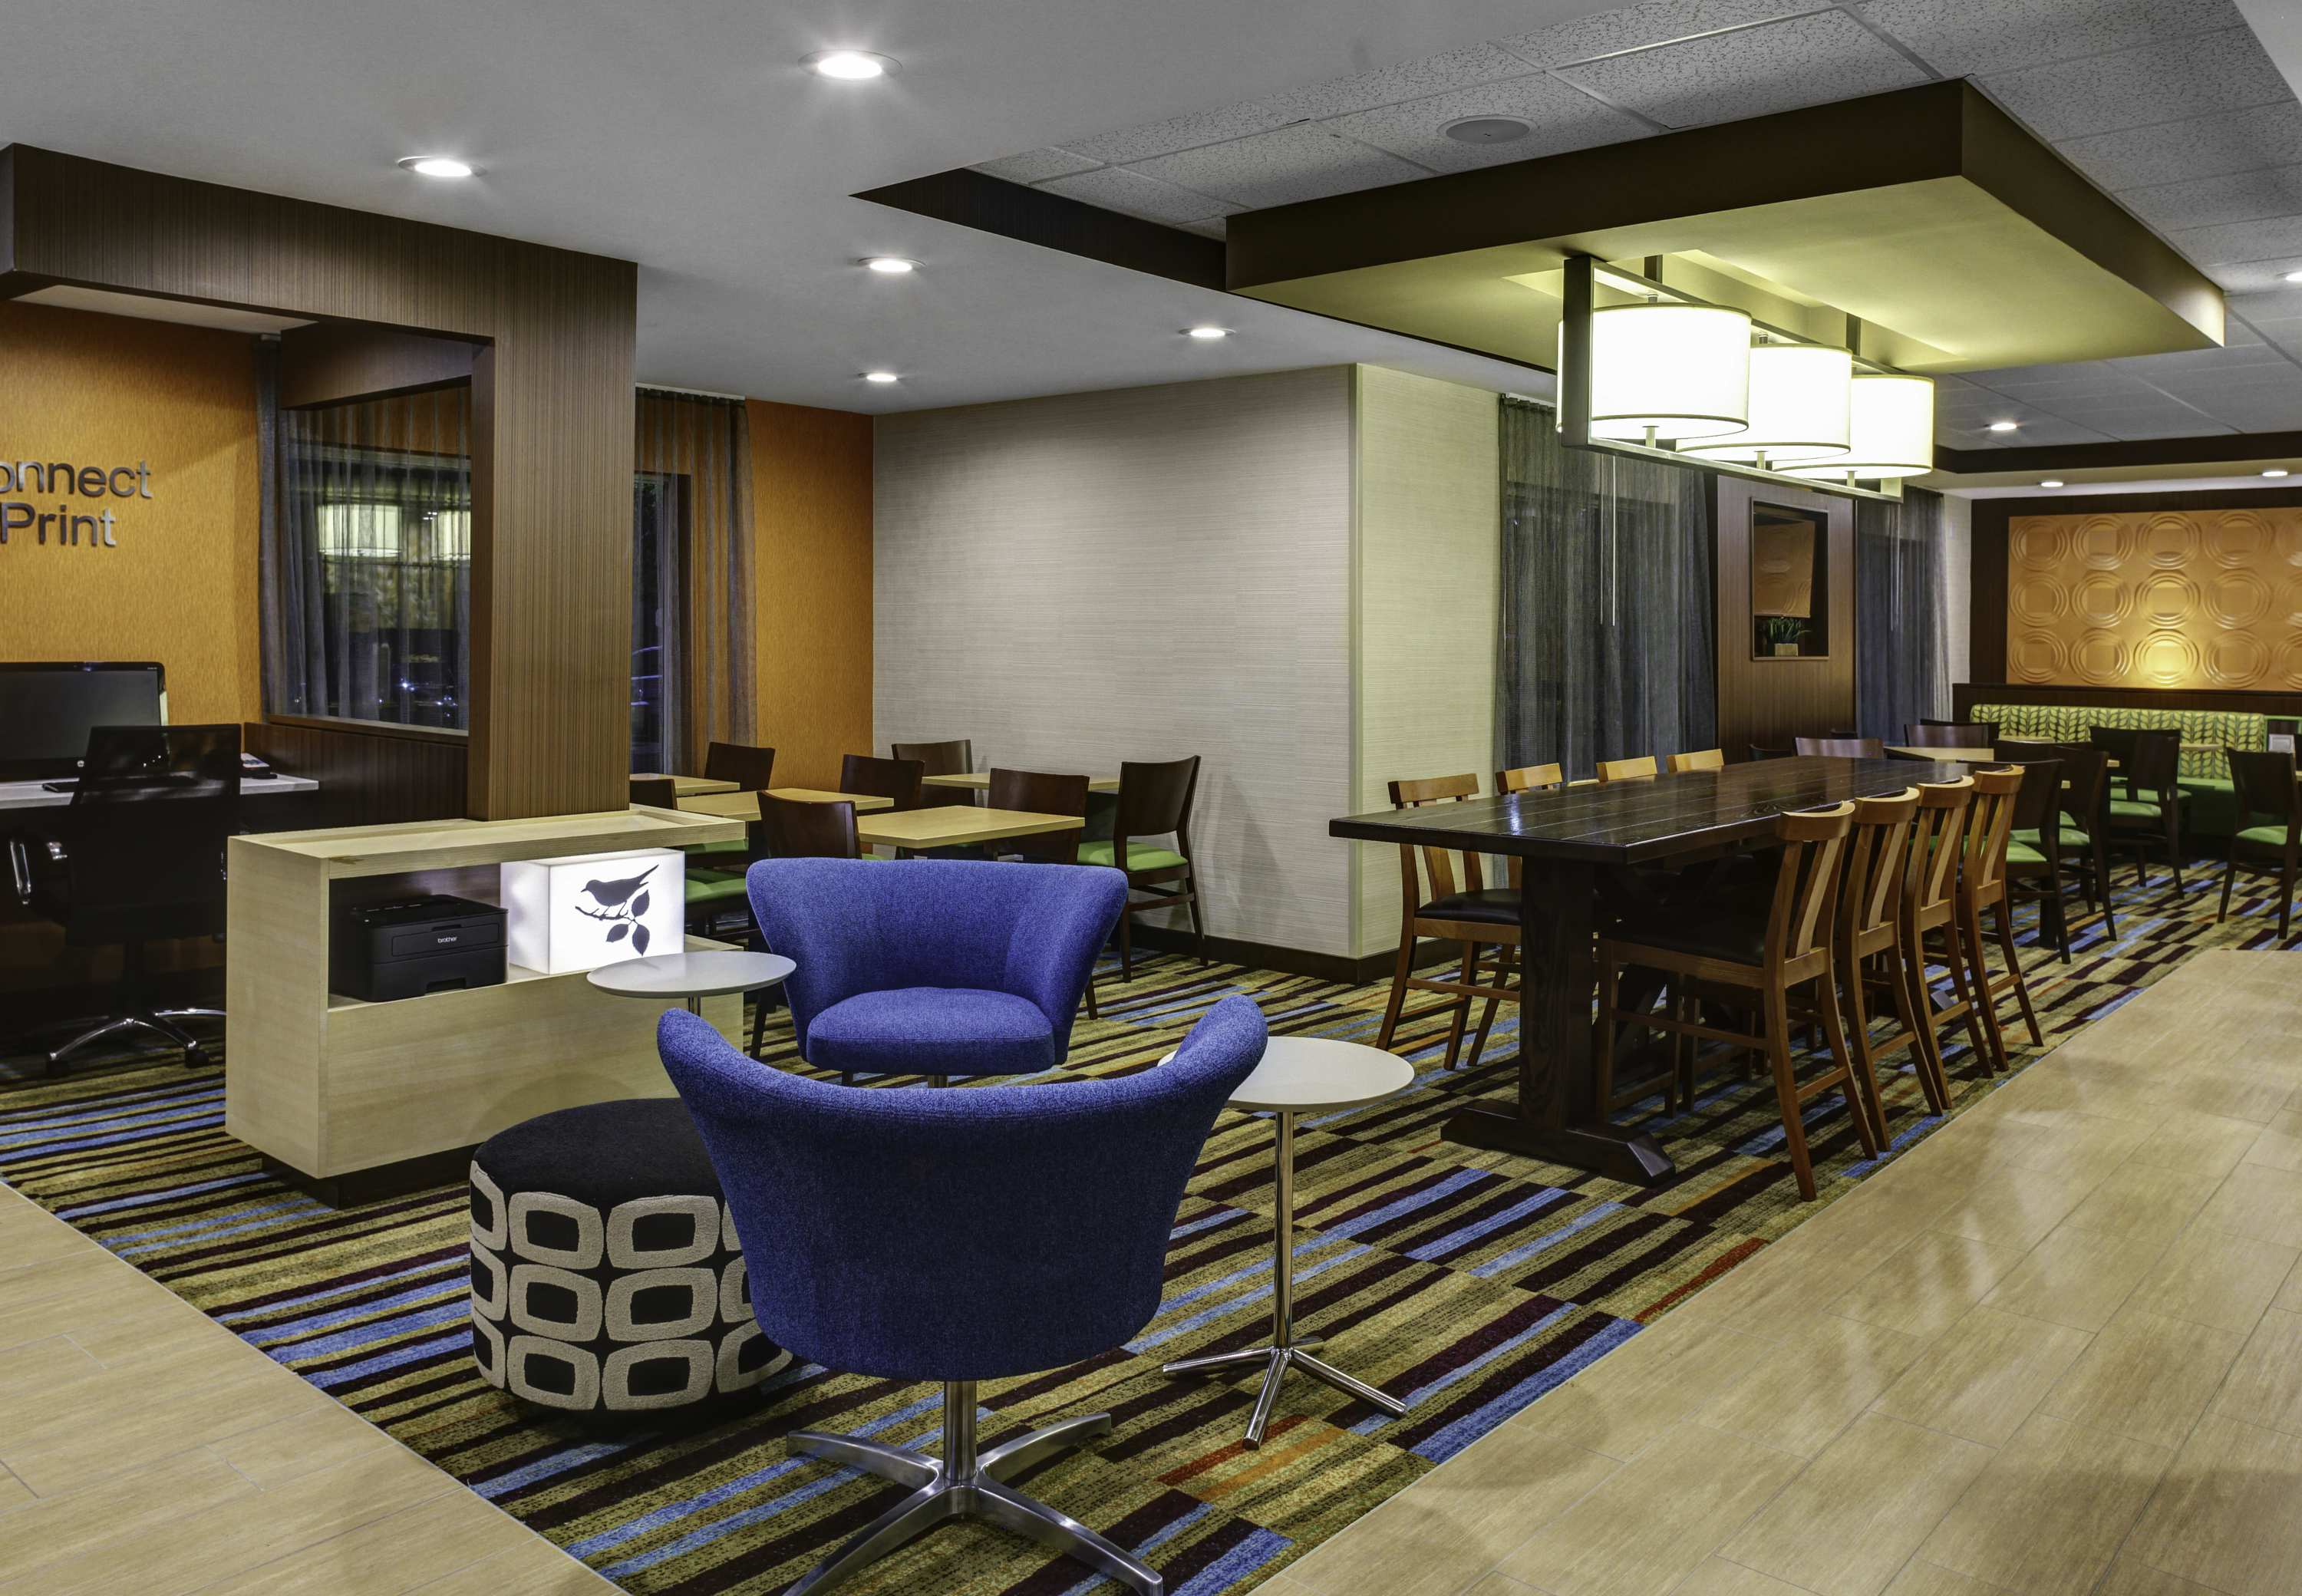 The NEWLY RENOVATED Fairfield Inn & Suites Atlanta Vinings/Galleria offers you a great night's stay at an exceptional value! Our fresh hotel is situated only minutes from the new SunTrust Park, downtown Atlanta, and its many attractions.4/5().